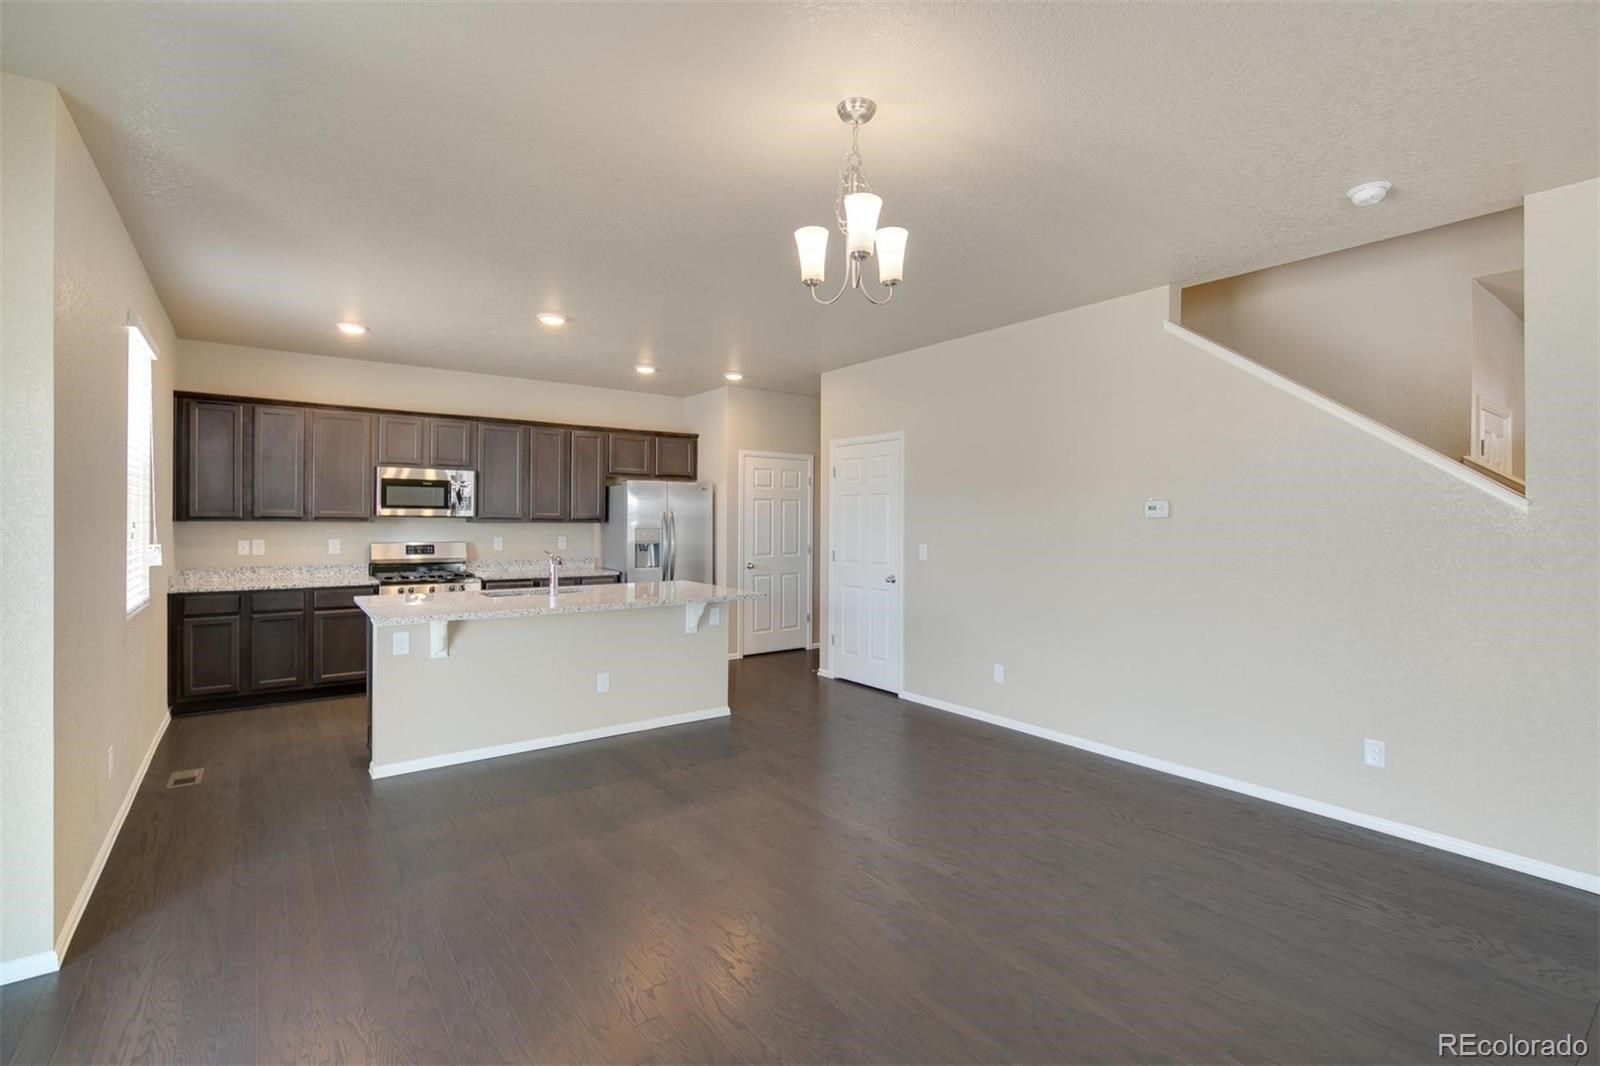 MLS# 4867430 - 4 - 915 Camberly Drive, Windsor, CO 80550